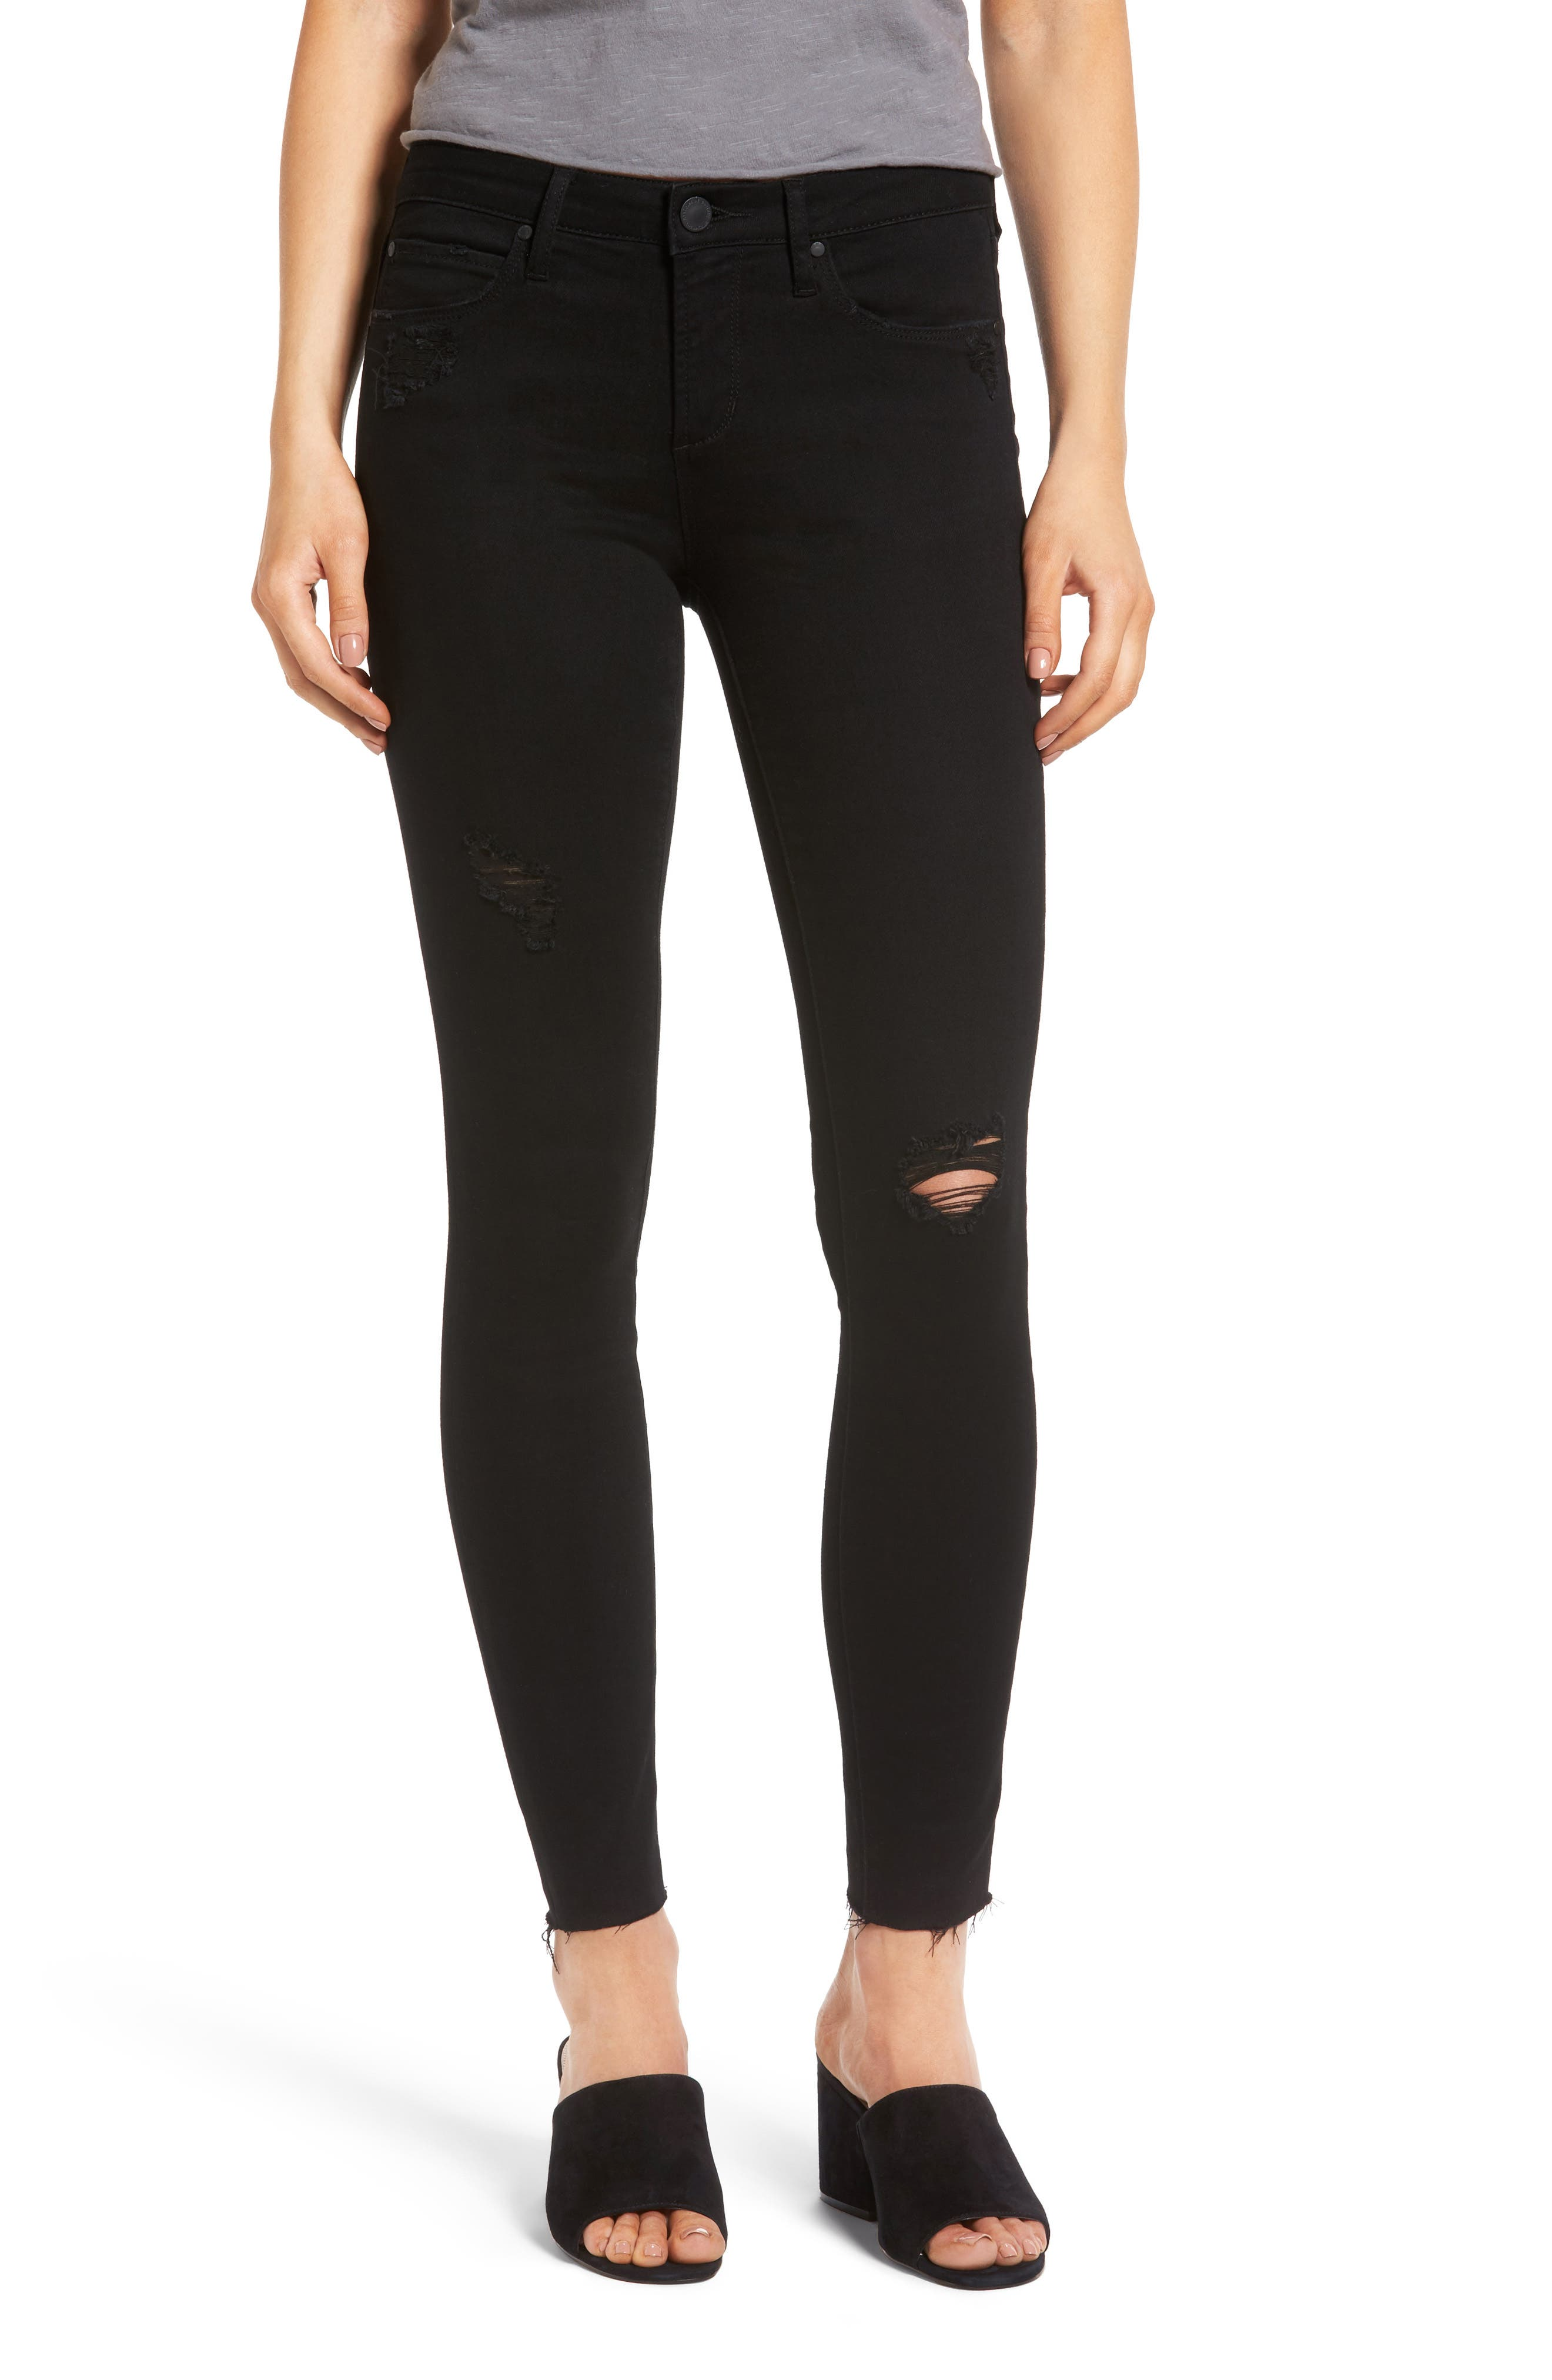 Can i wear a pad with skinny jeans